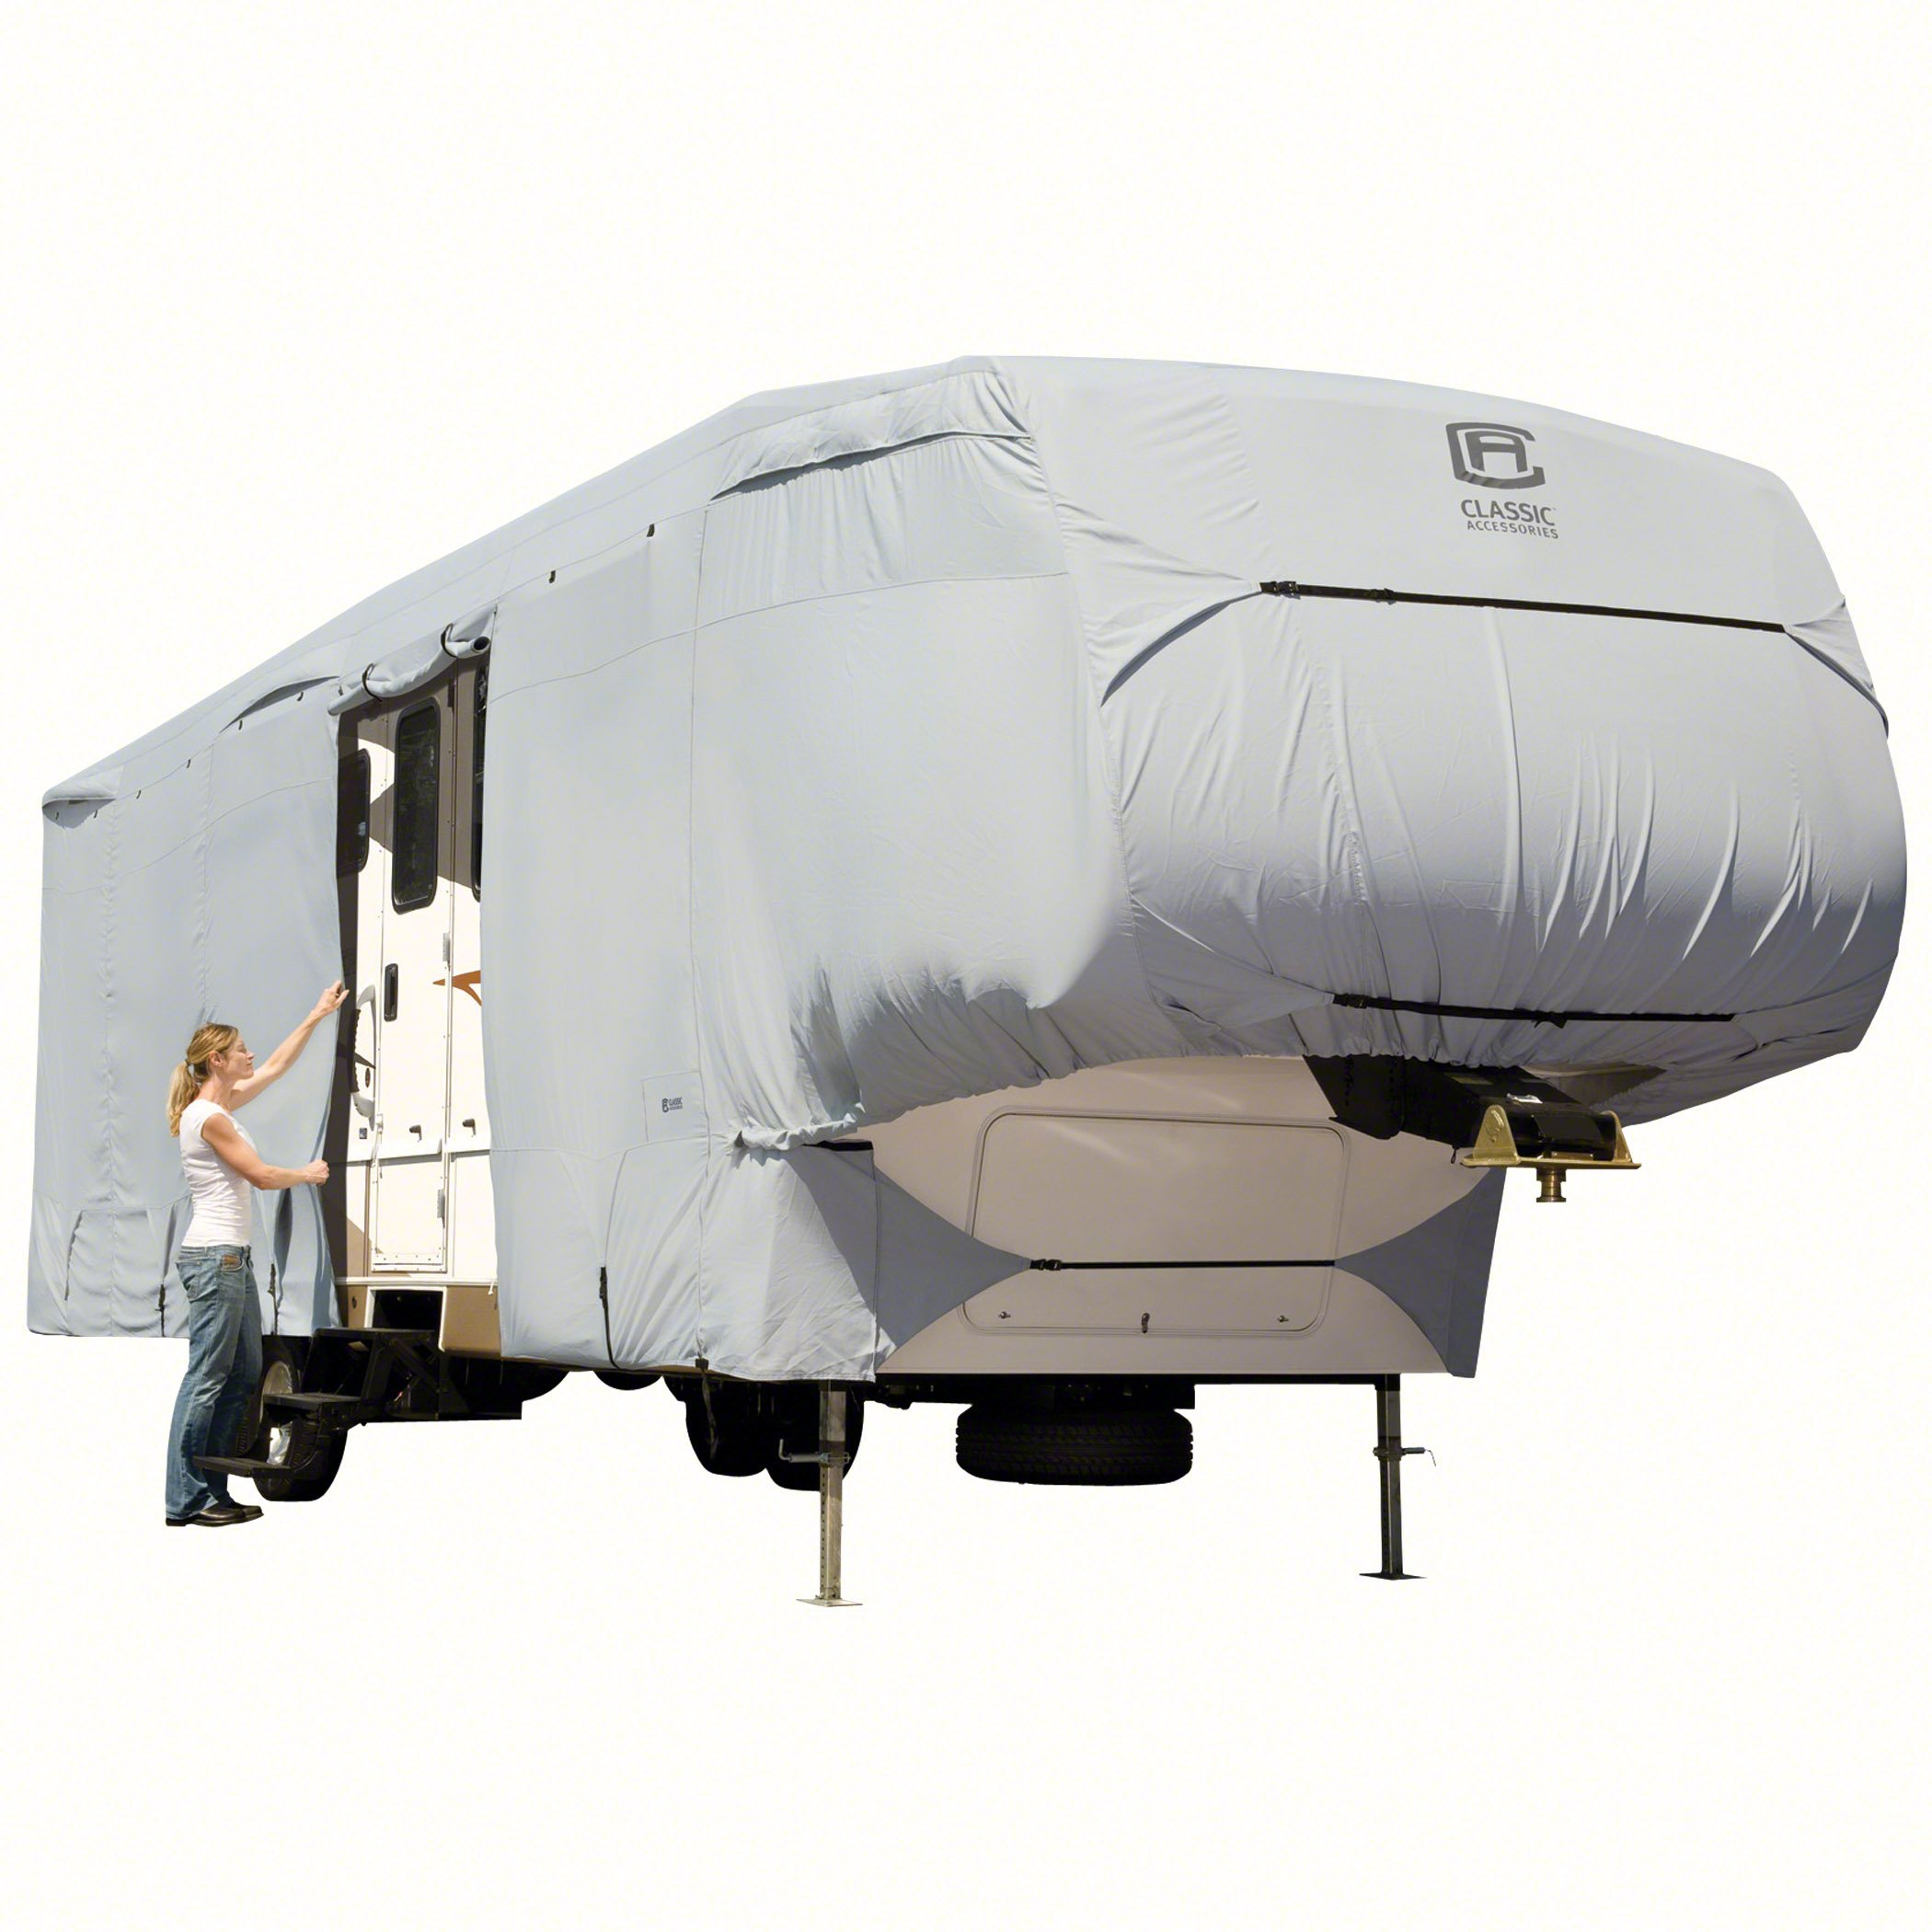 Classic Accessories OverDrive PermaPro Heavy Duty Cover for 20' to 23' 5th Wheel Trailers by Classic Accessories